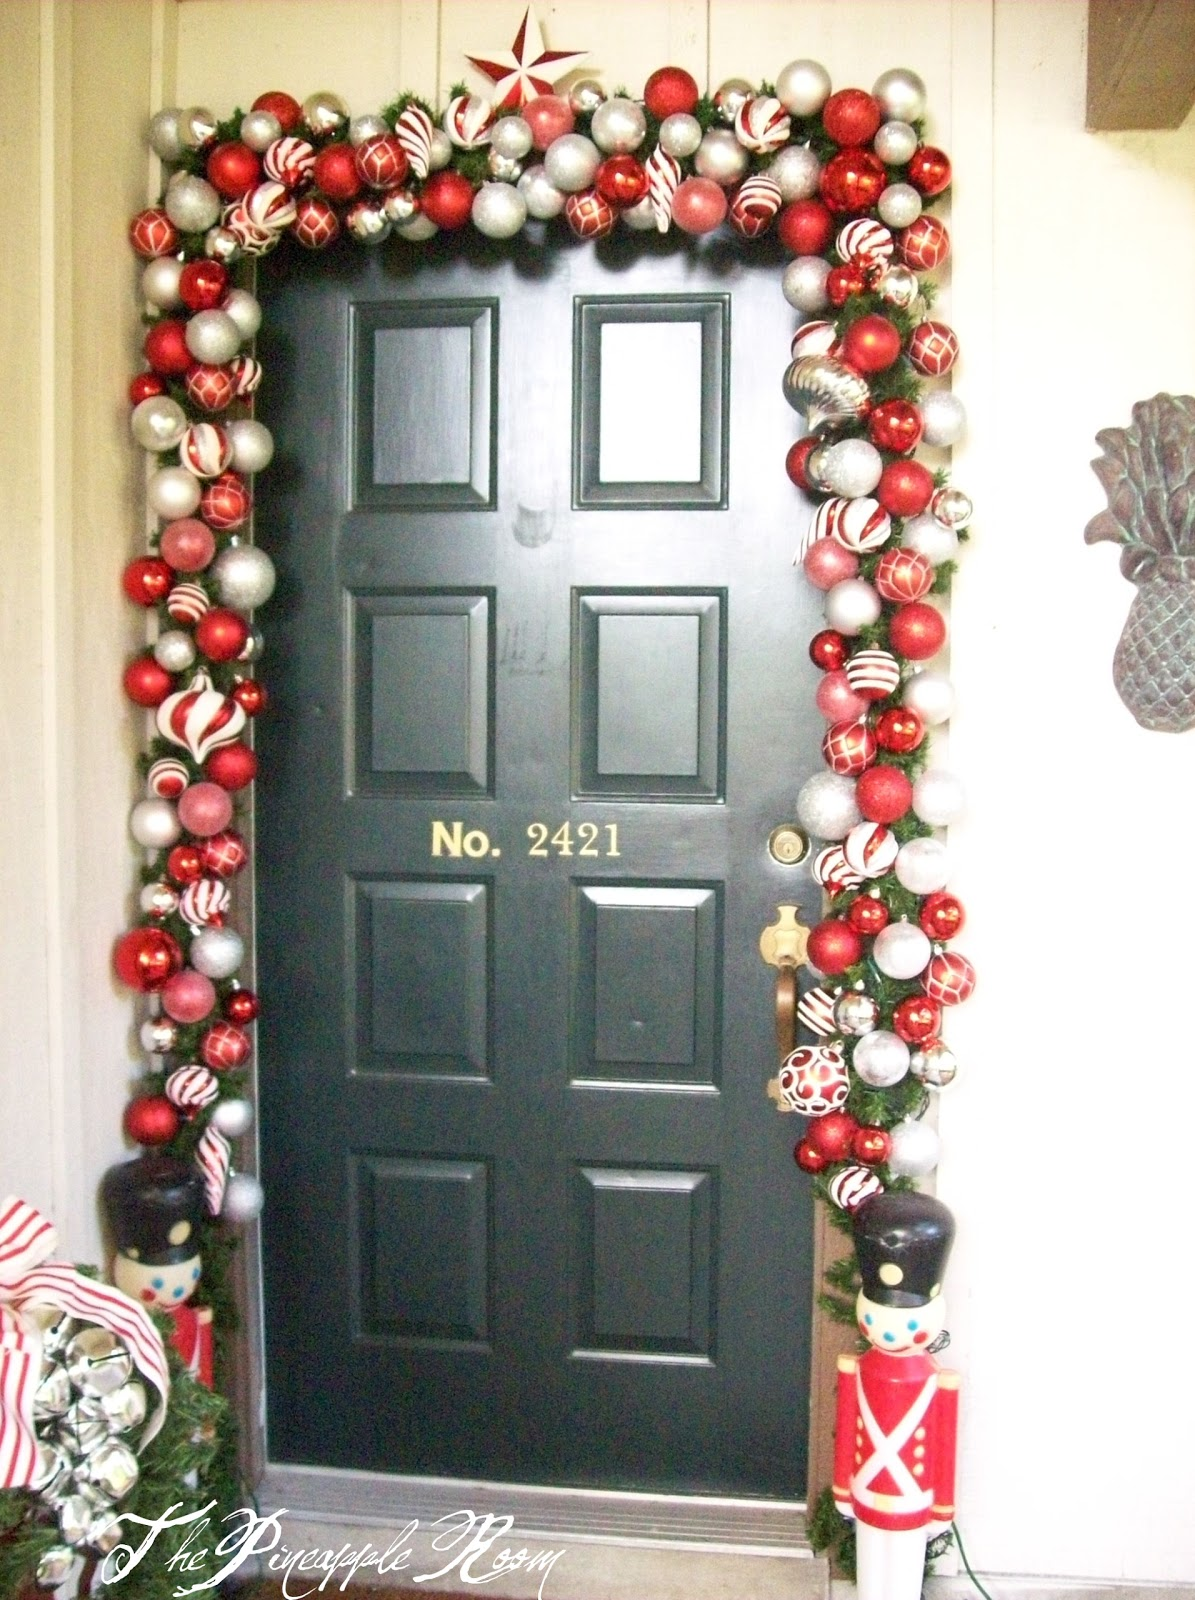 The pineapple room a very merry front door for How to decorate apartment door for christmas